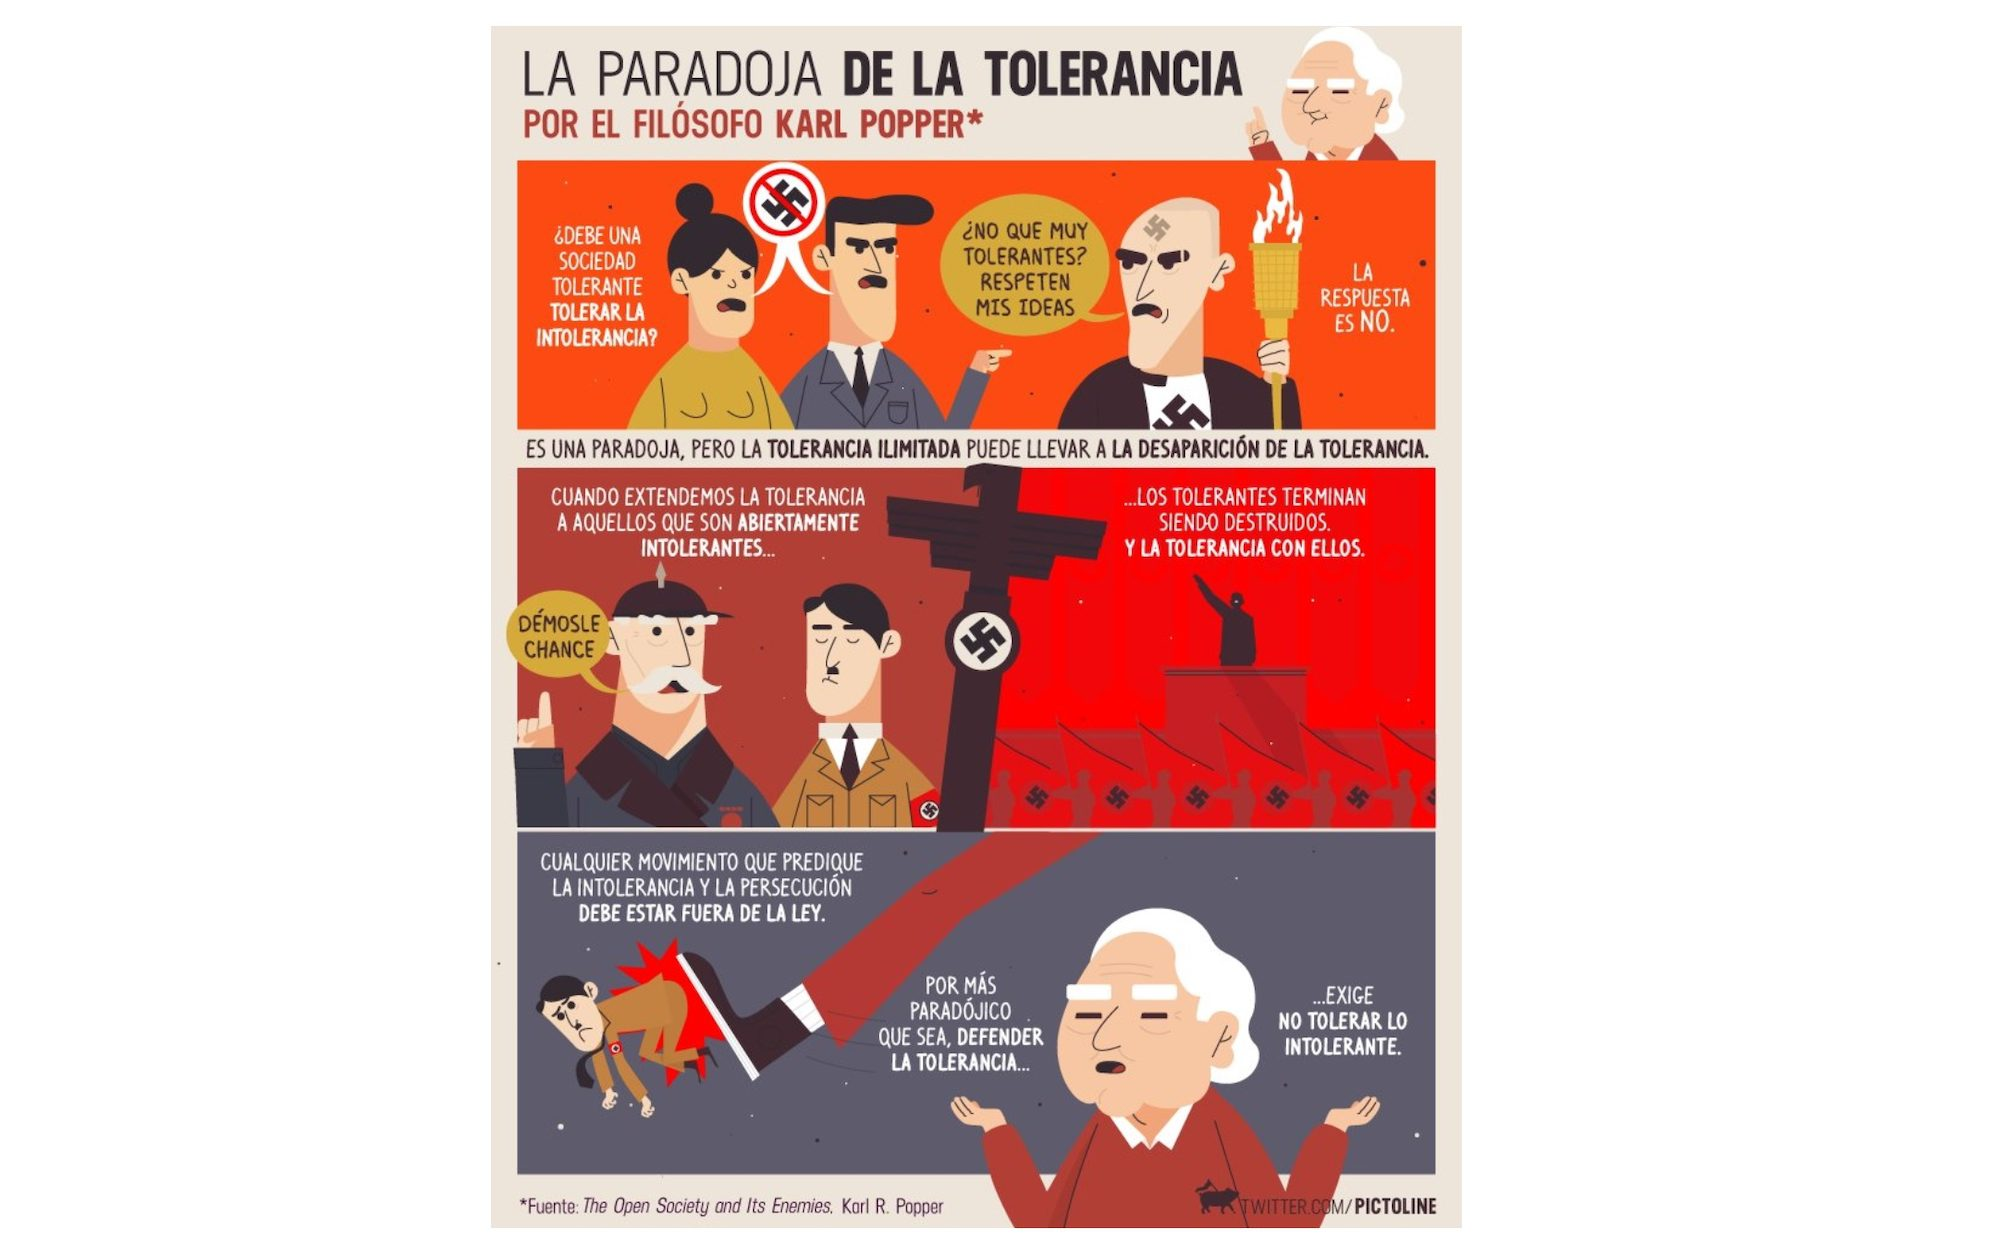 karl popper tolerancia pictoline